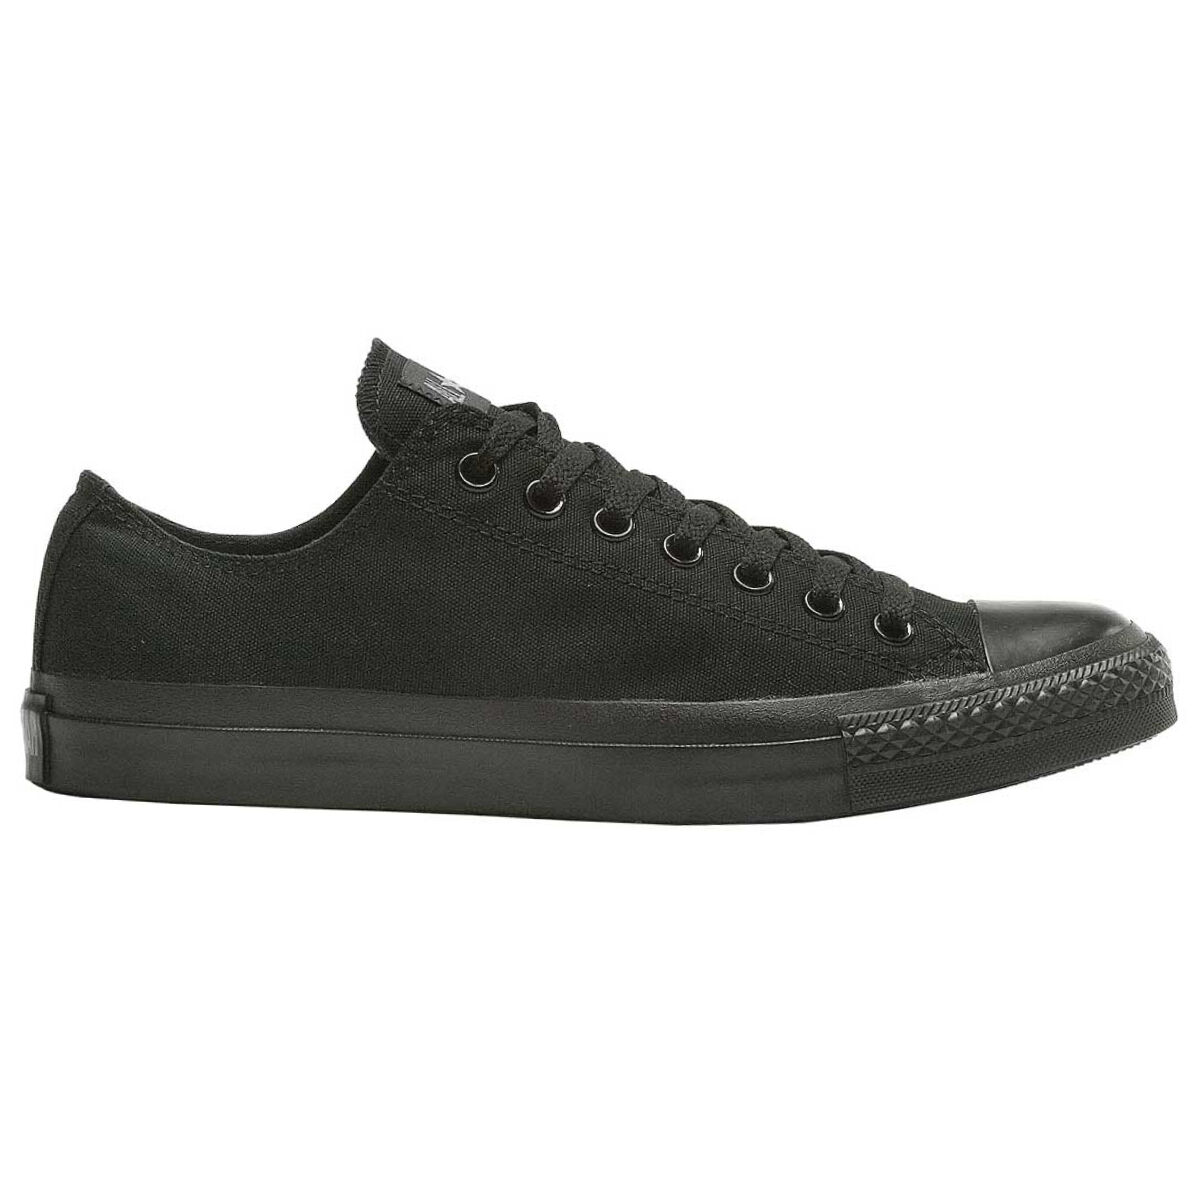 Converse Chuck Taylor All Star Low Casual Shoes Black Black US Mens 8 Womens 10